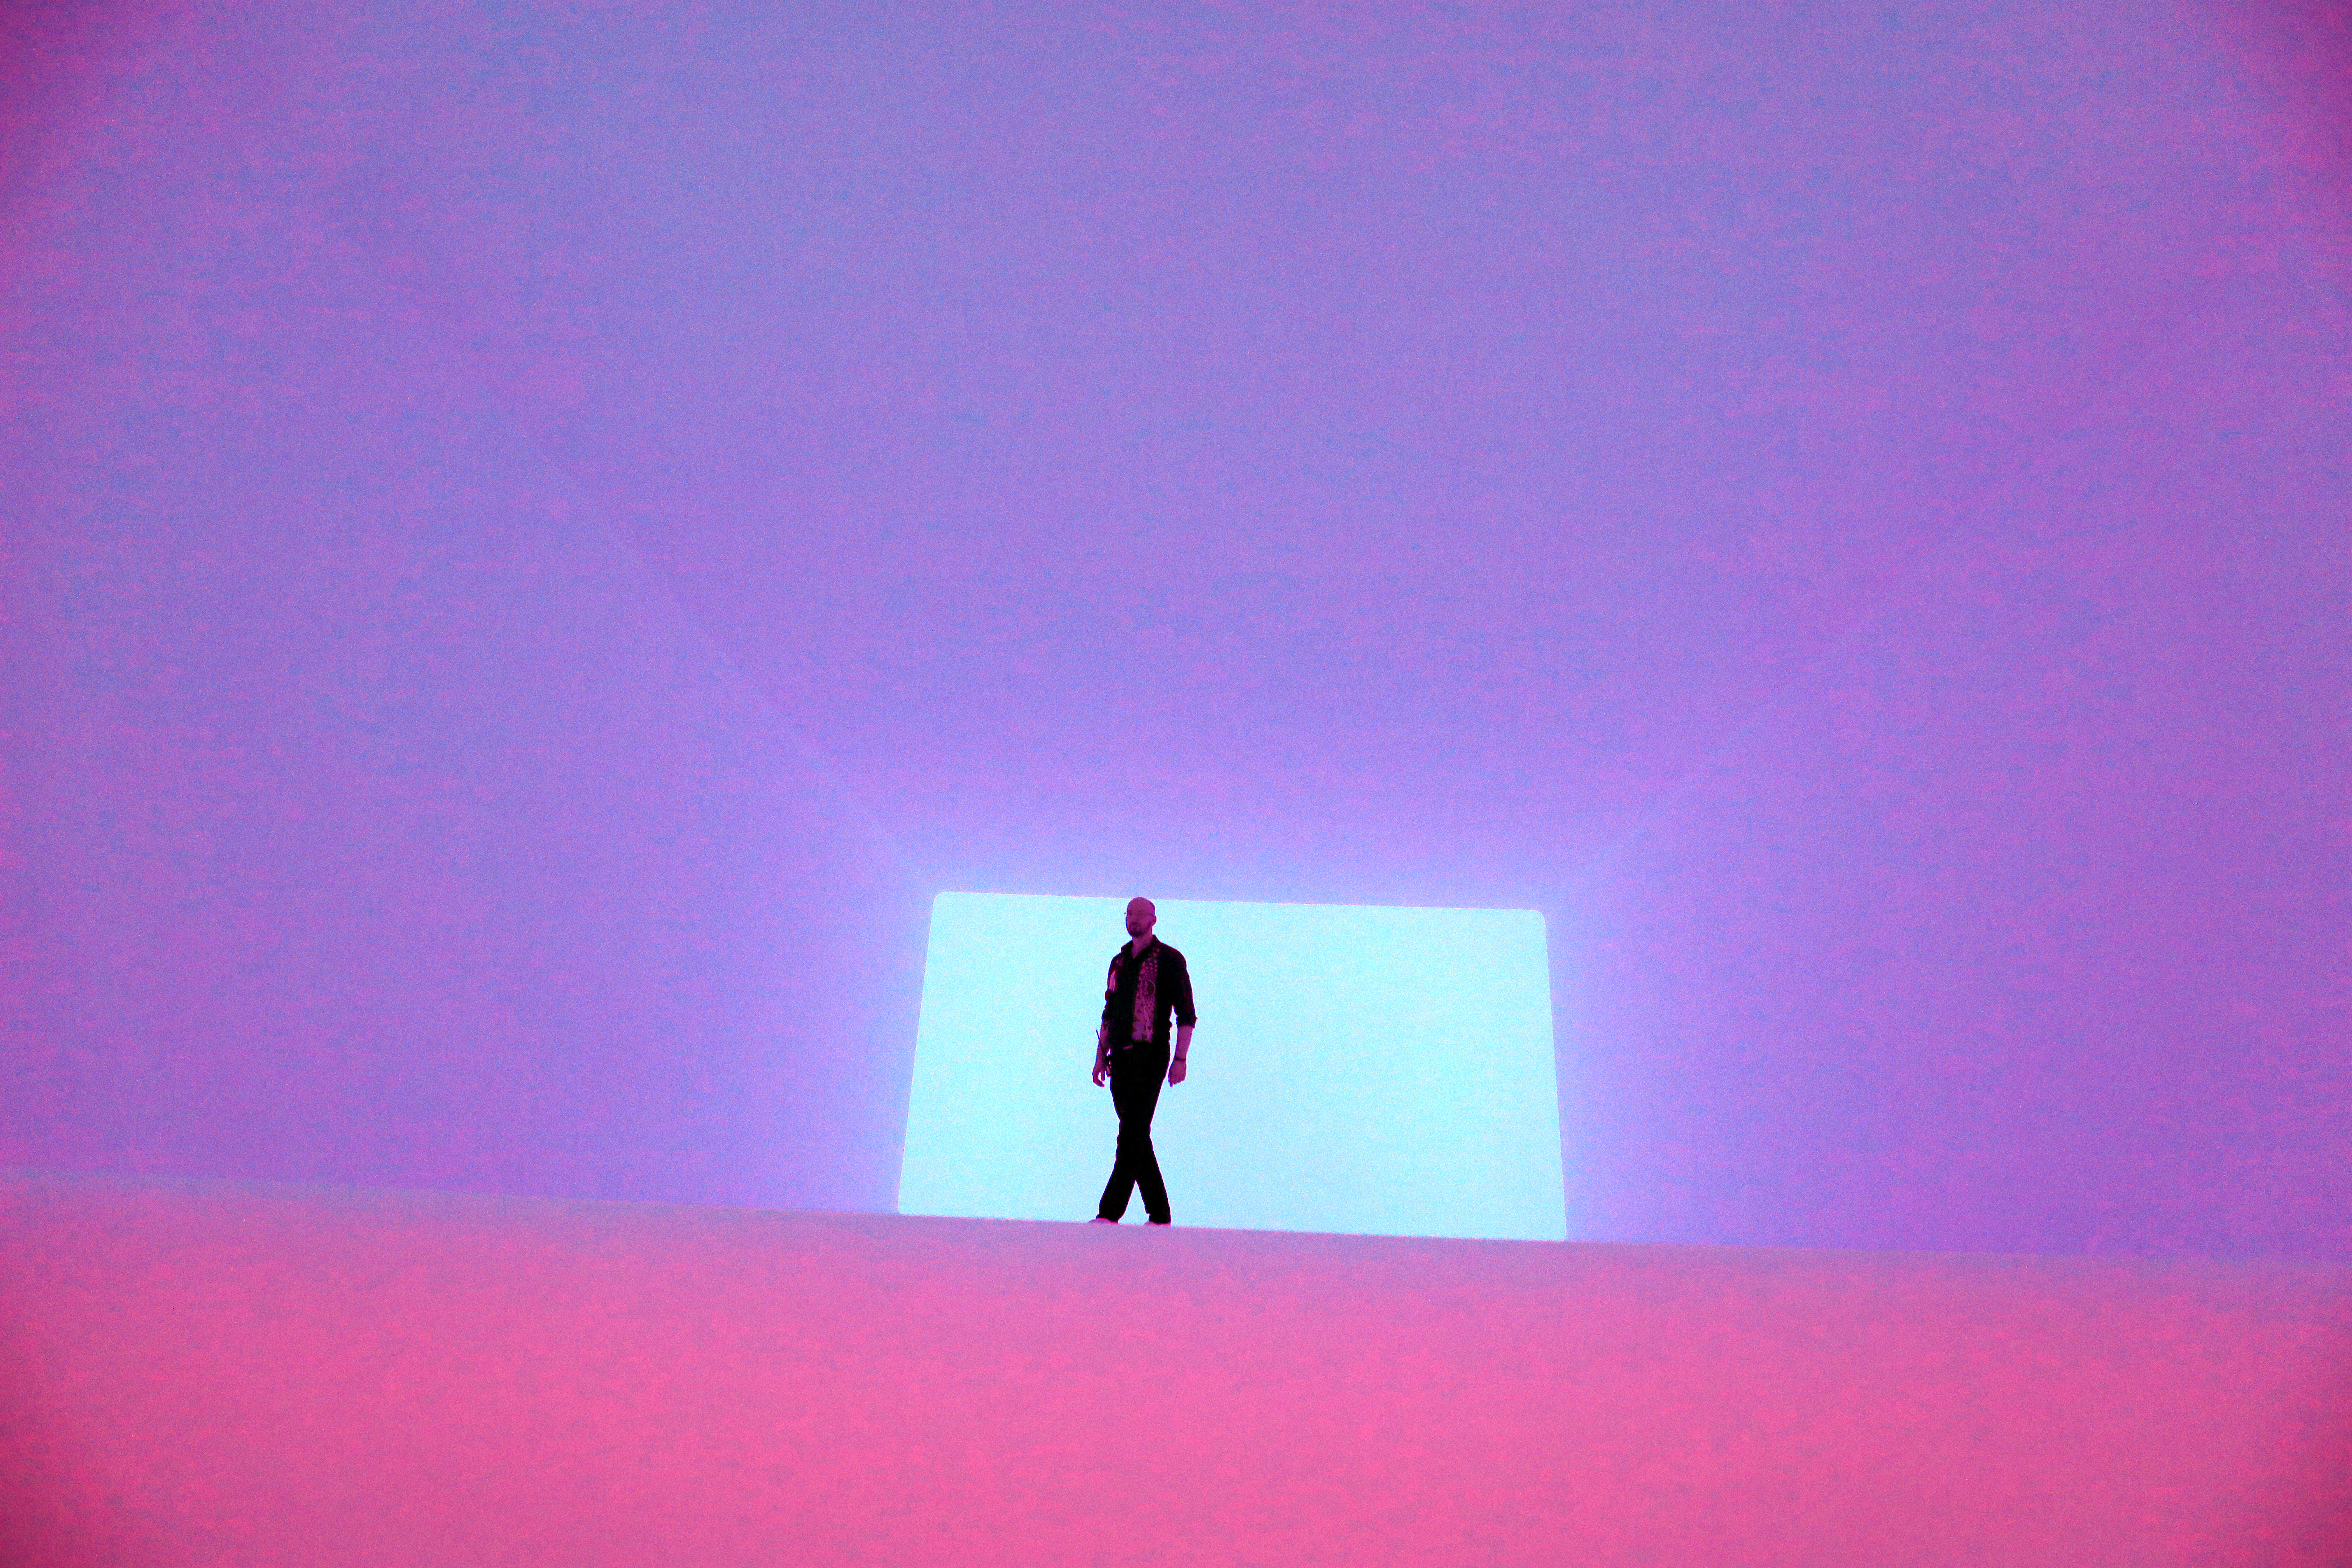 Why Kanye's new spiritual work keeps borrowing from James Turrell